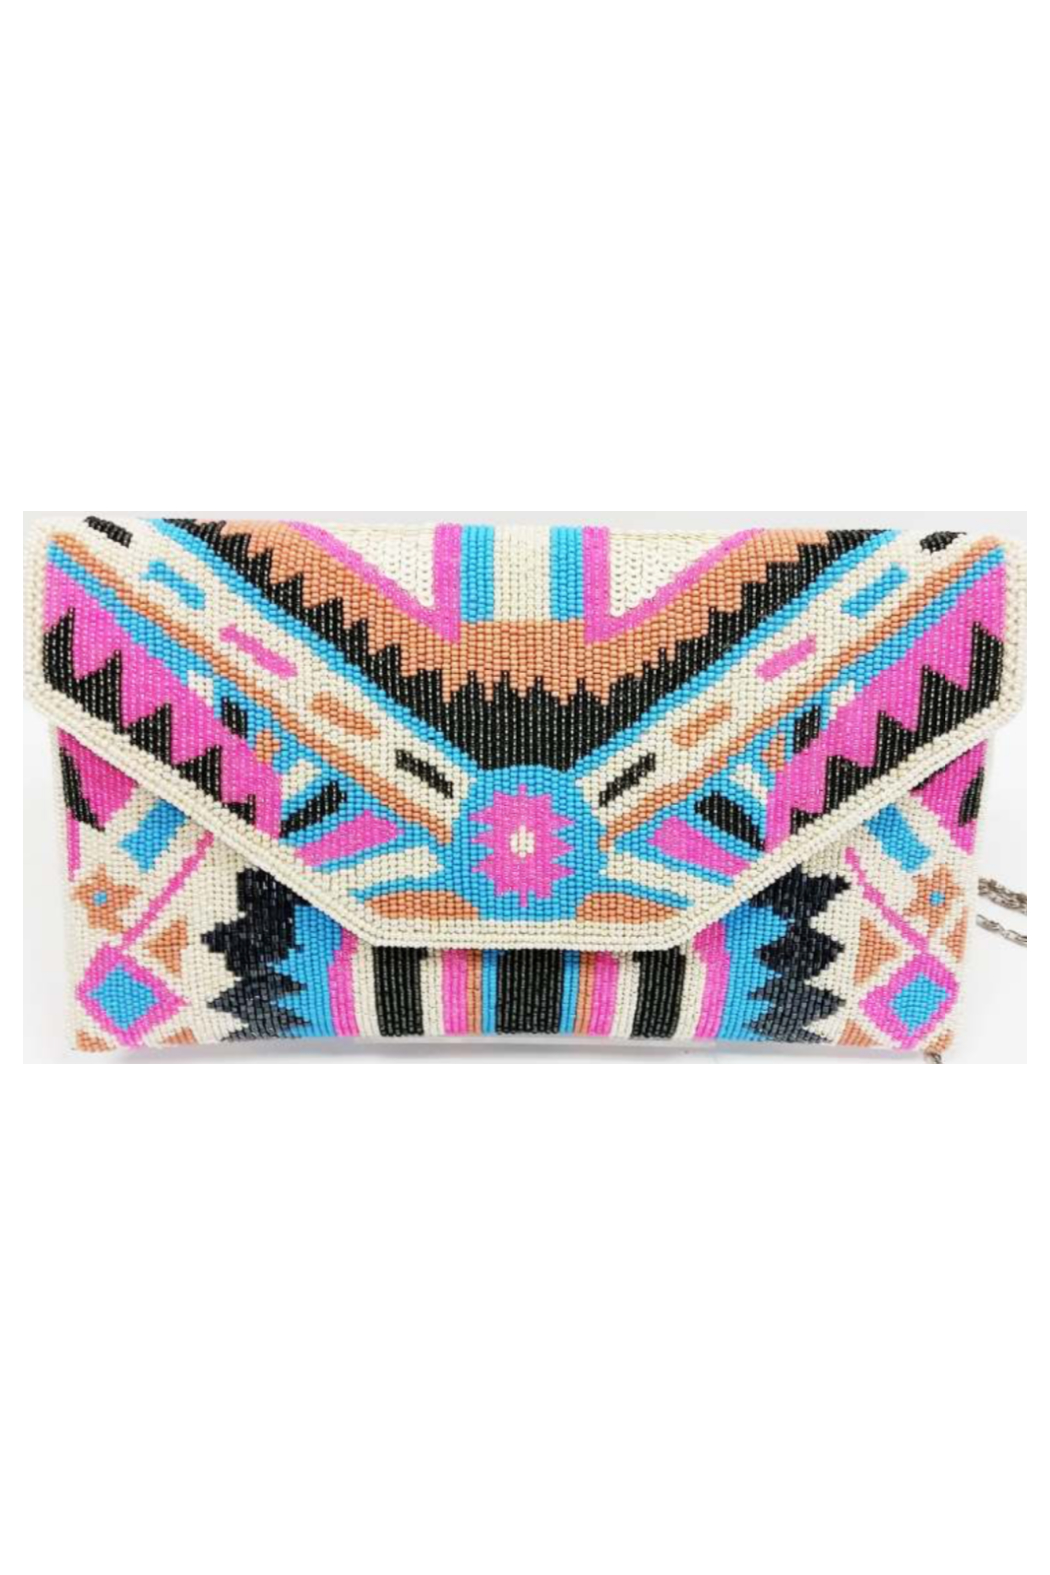 Ricki Designs Multi Color Geometrical Beaded Clutch Pink Turquoise - Main Image